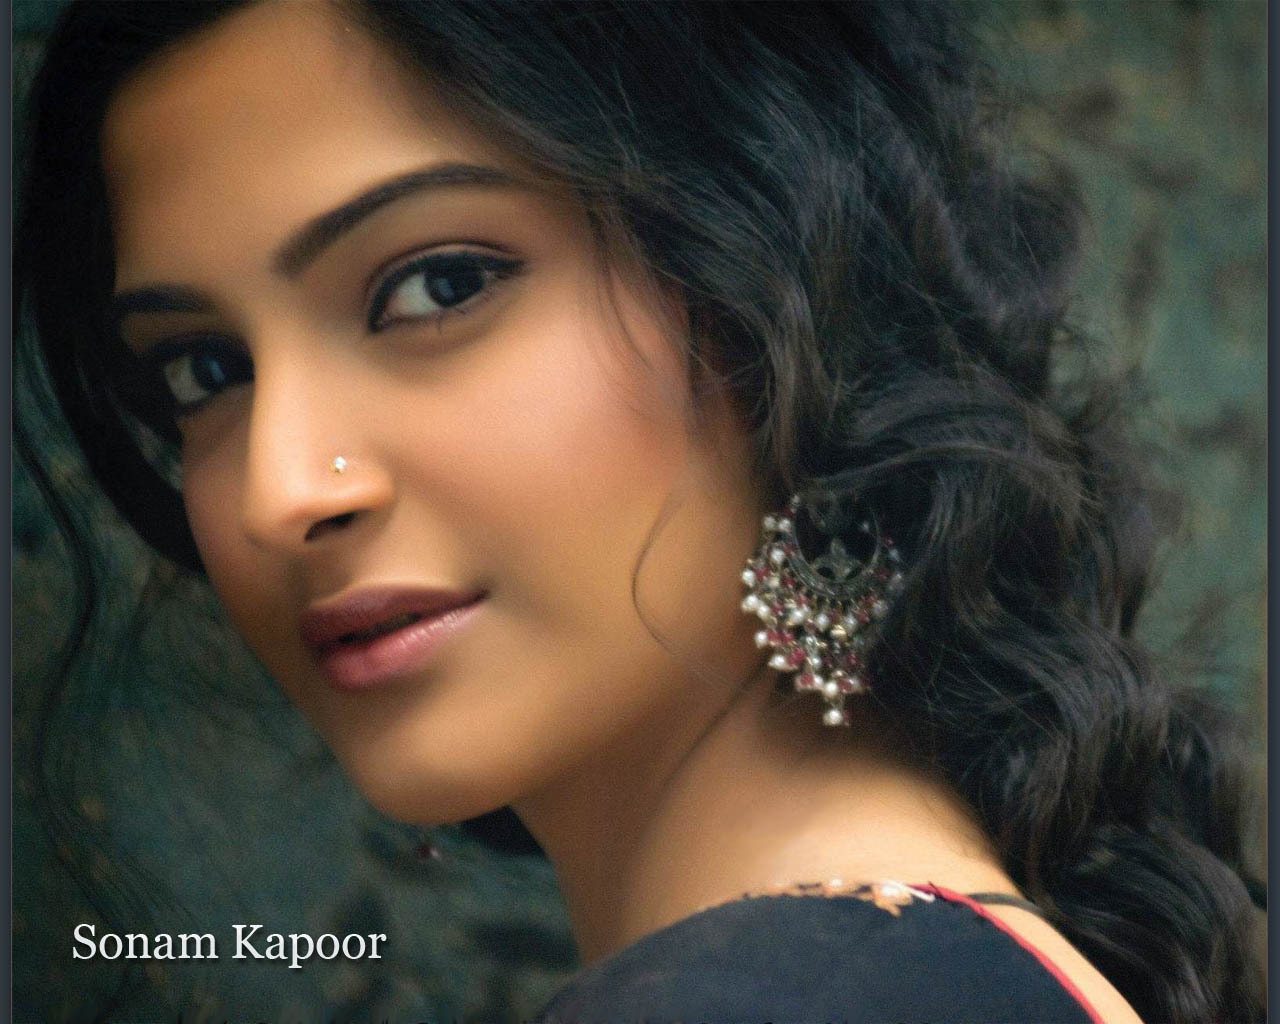 sonam kapoor images sonam hd wallpaper and background photos (16625360)